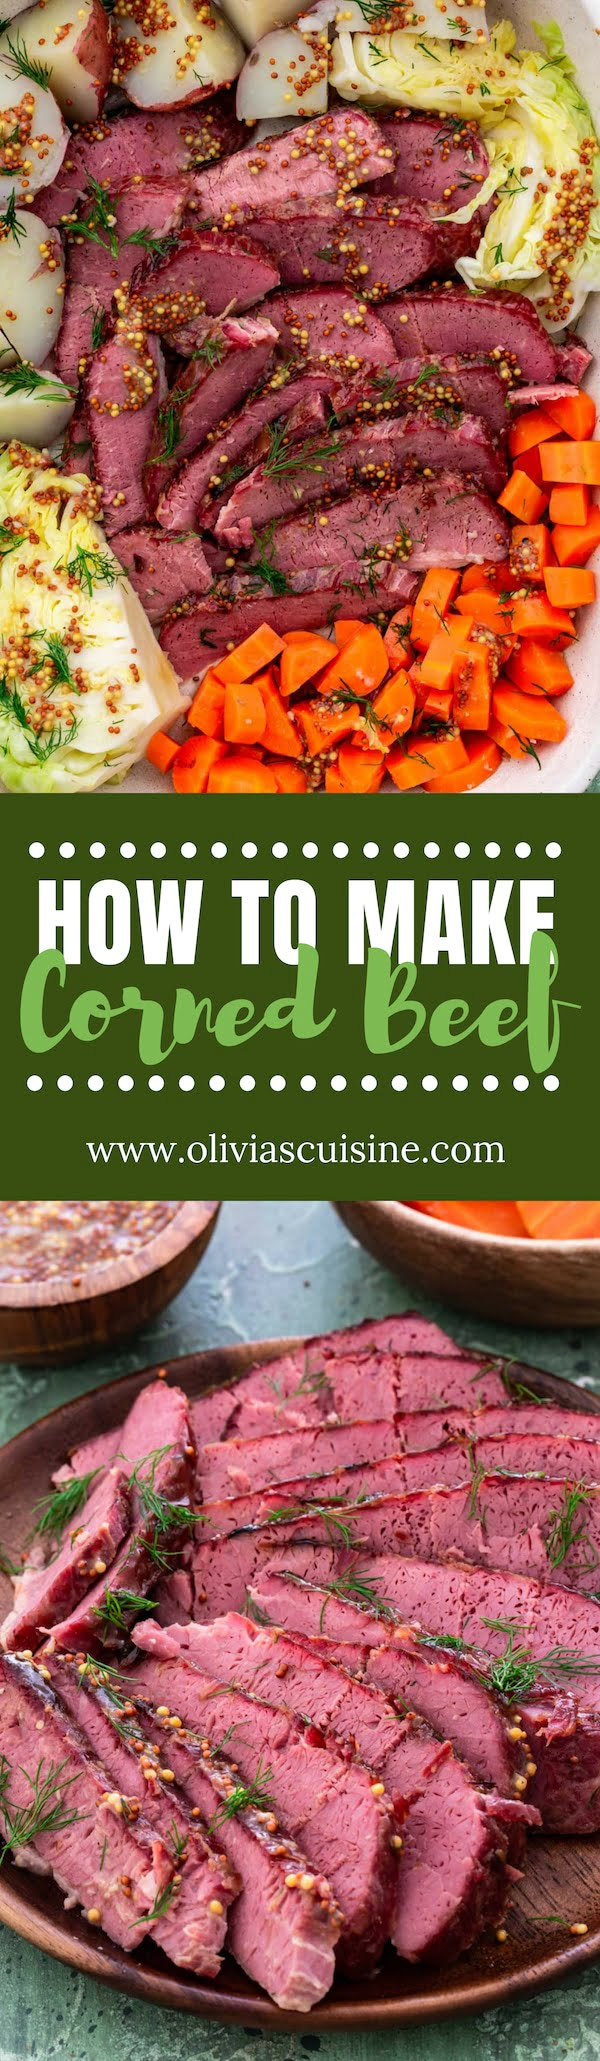 How to Make Corned Beef from Scratch | www.oliviascuisine.com | Curing your own corned beef is very easy and will give you better flavors than store bought. Just make sure to allow the beef to brine for at least 7 days for best results! (Recipe and food photography by @oliviascuisine) #cornedbeef #irish #saintpatricksday